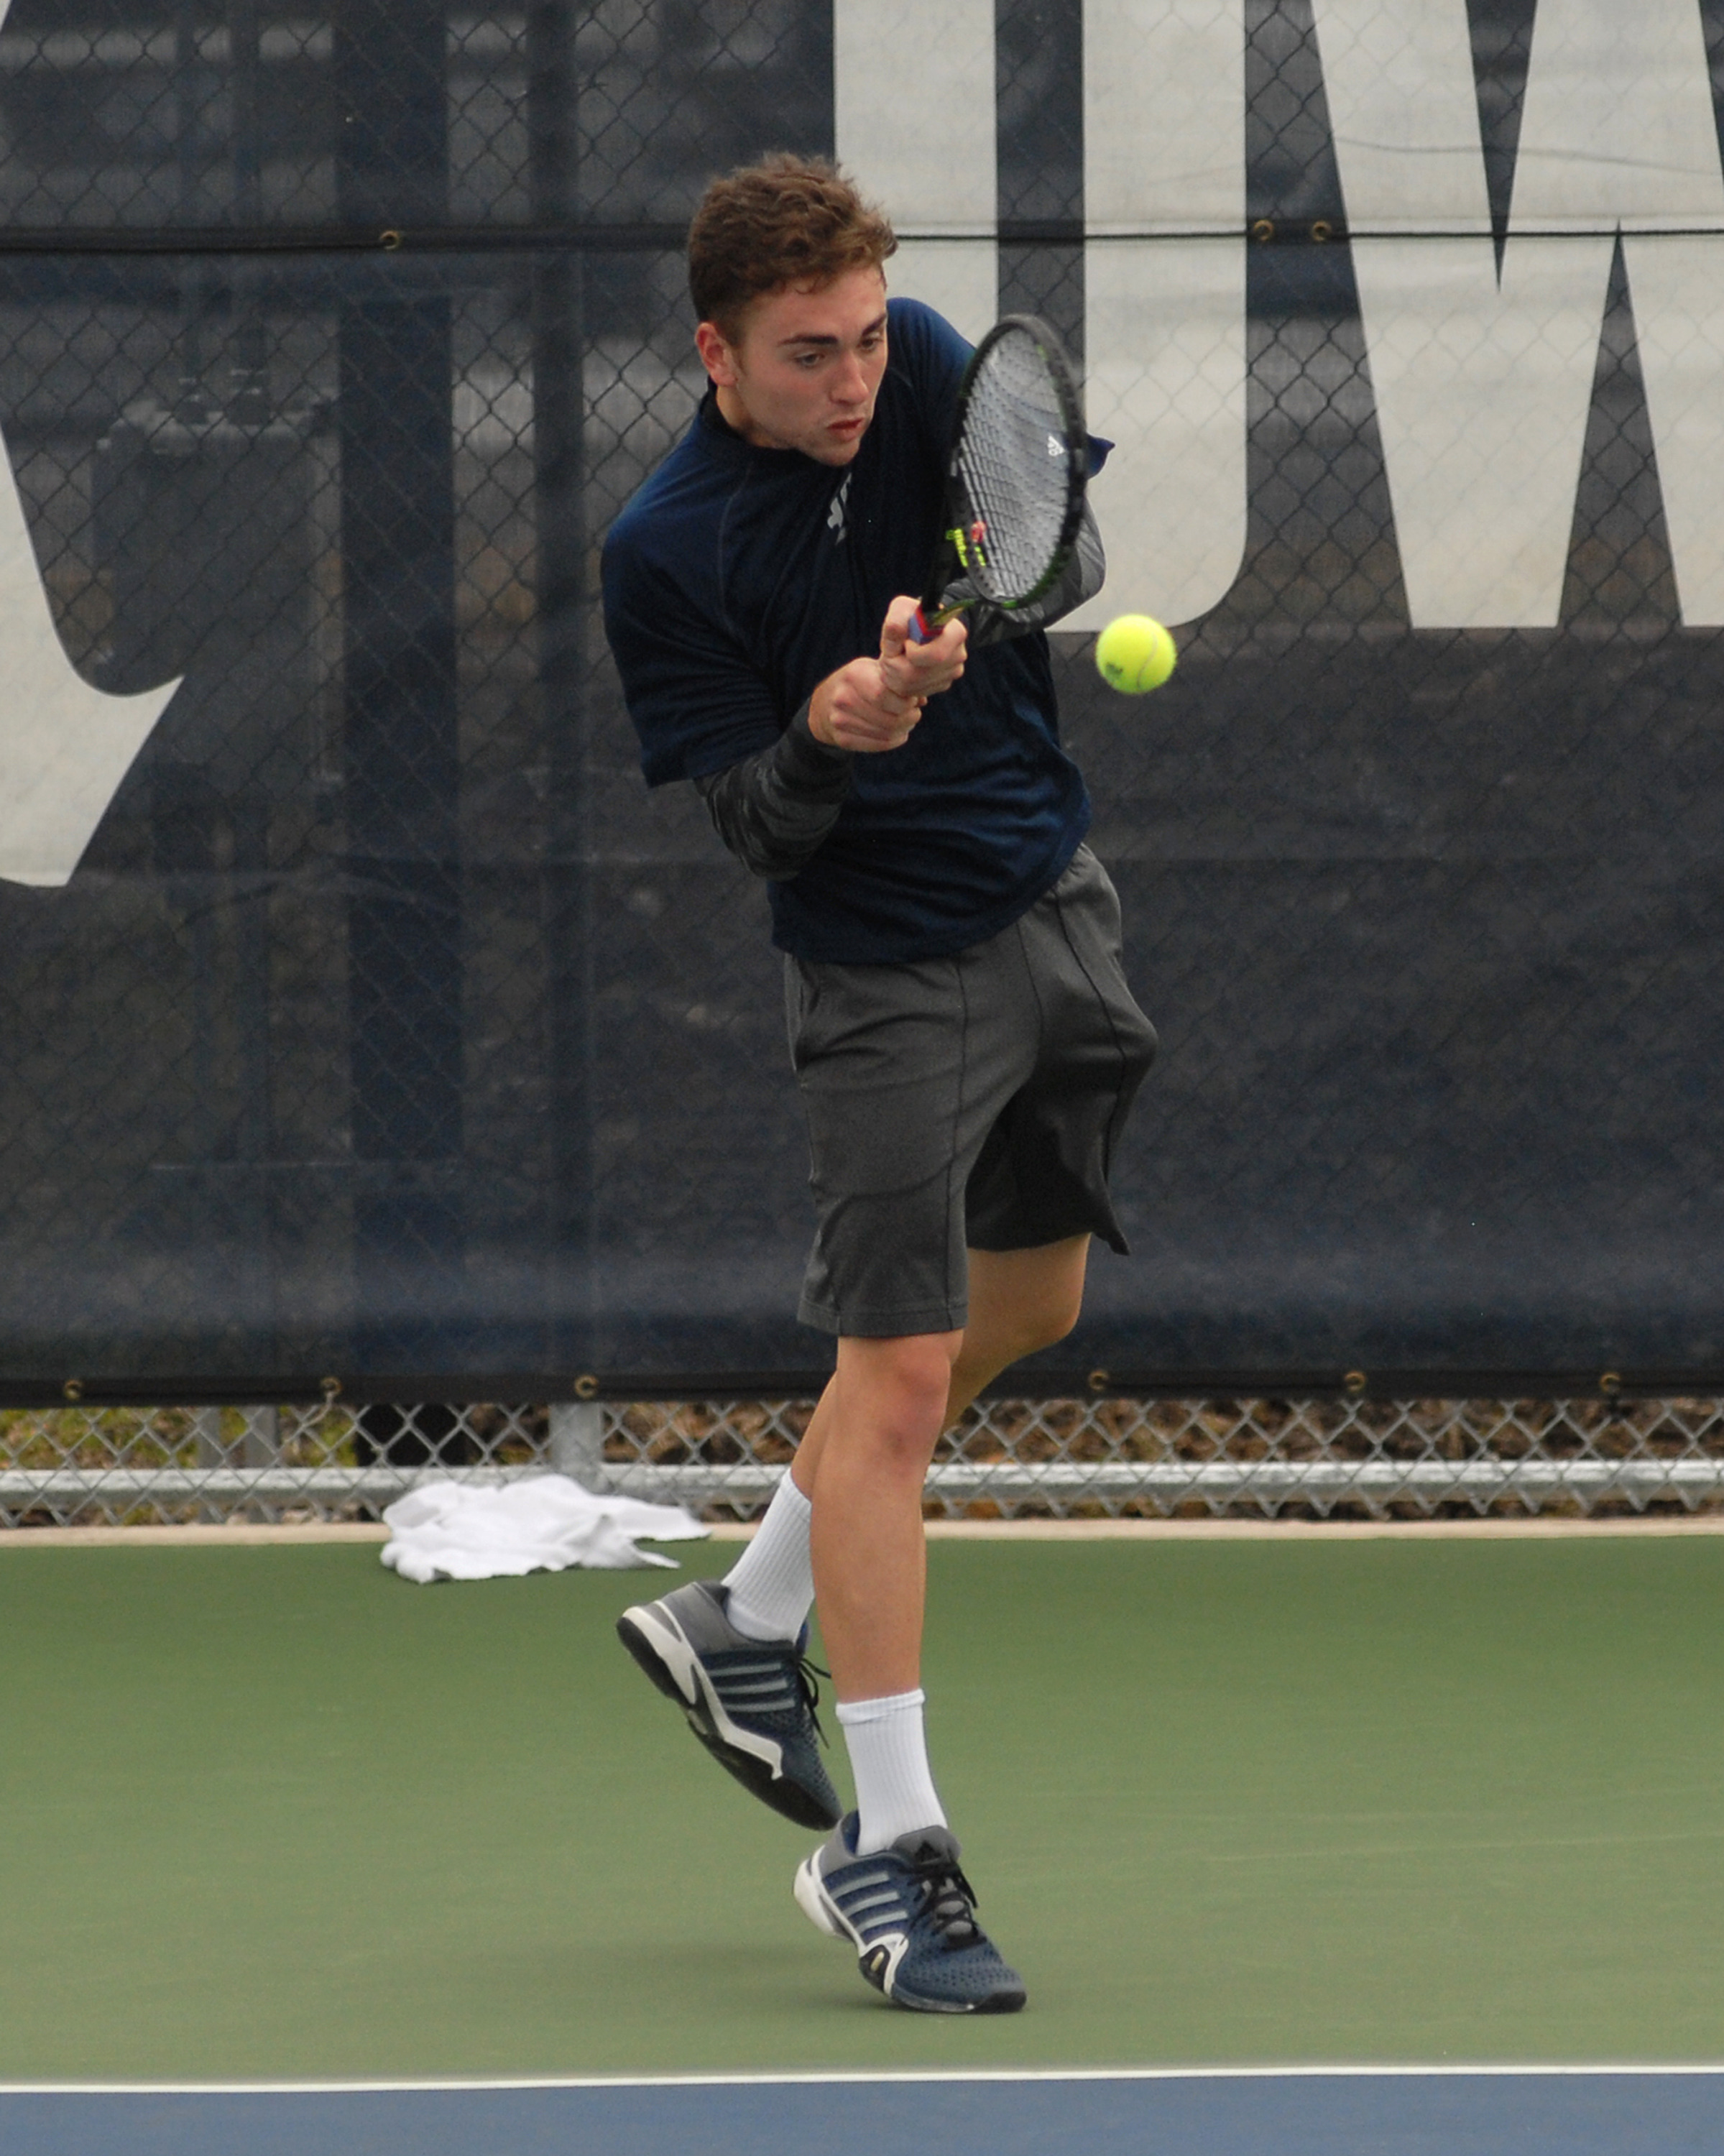 Max Andrews won in three sets on Sunday.